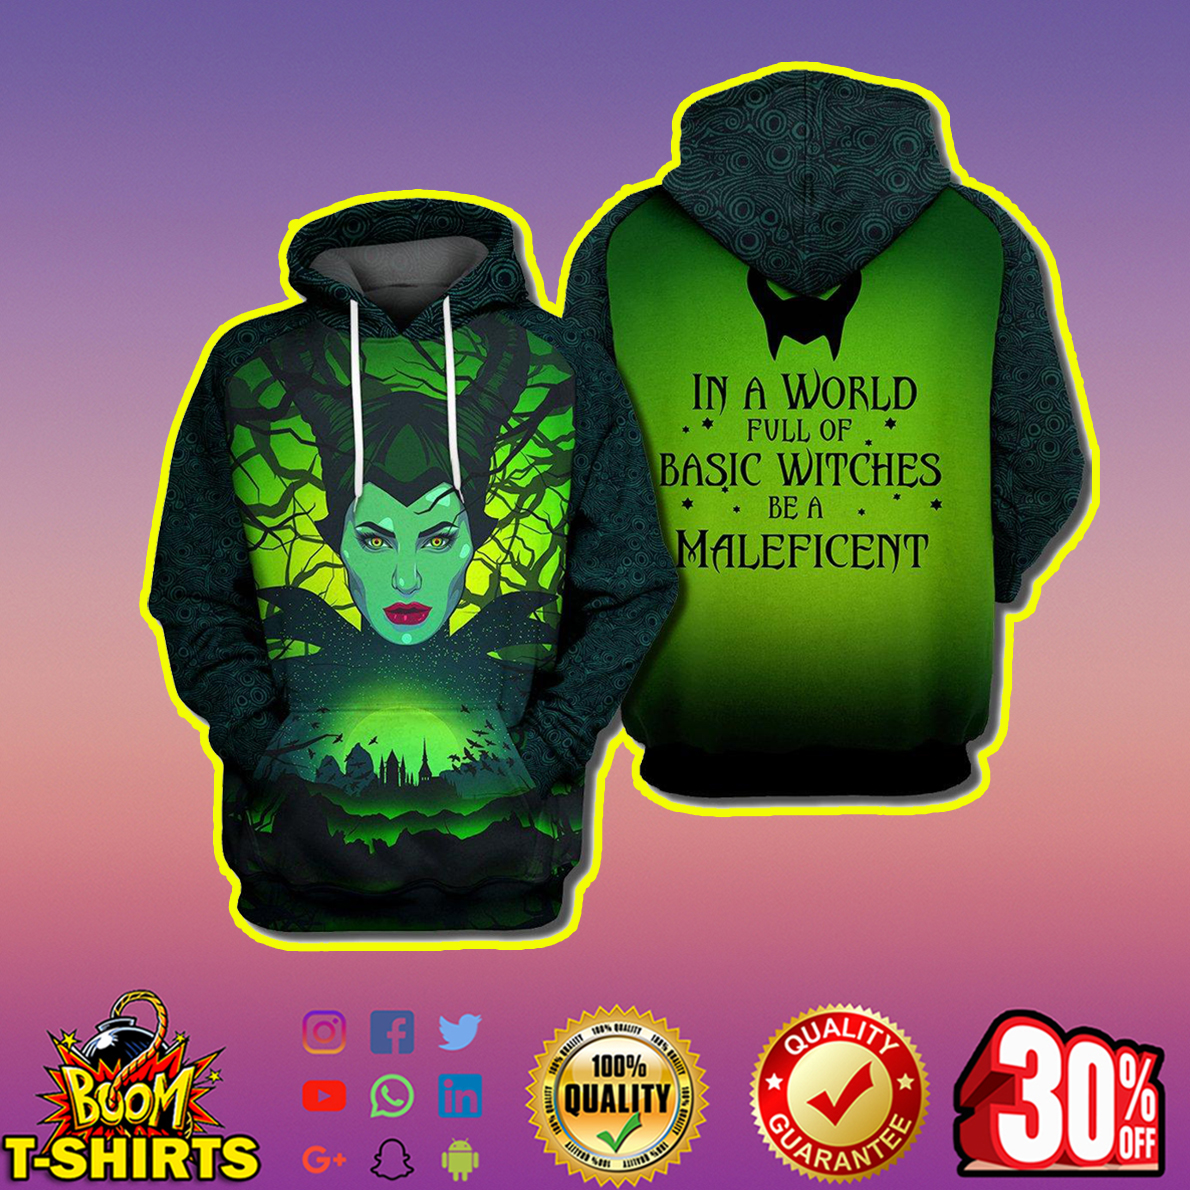 In a world full of basic witches be a Maleficent 3d print hoodie